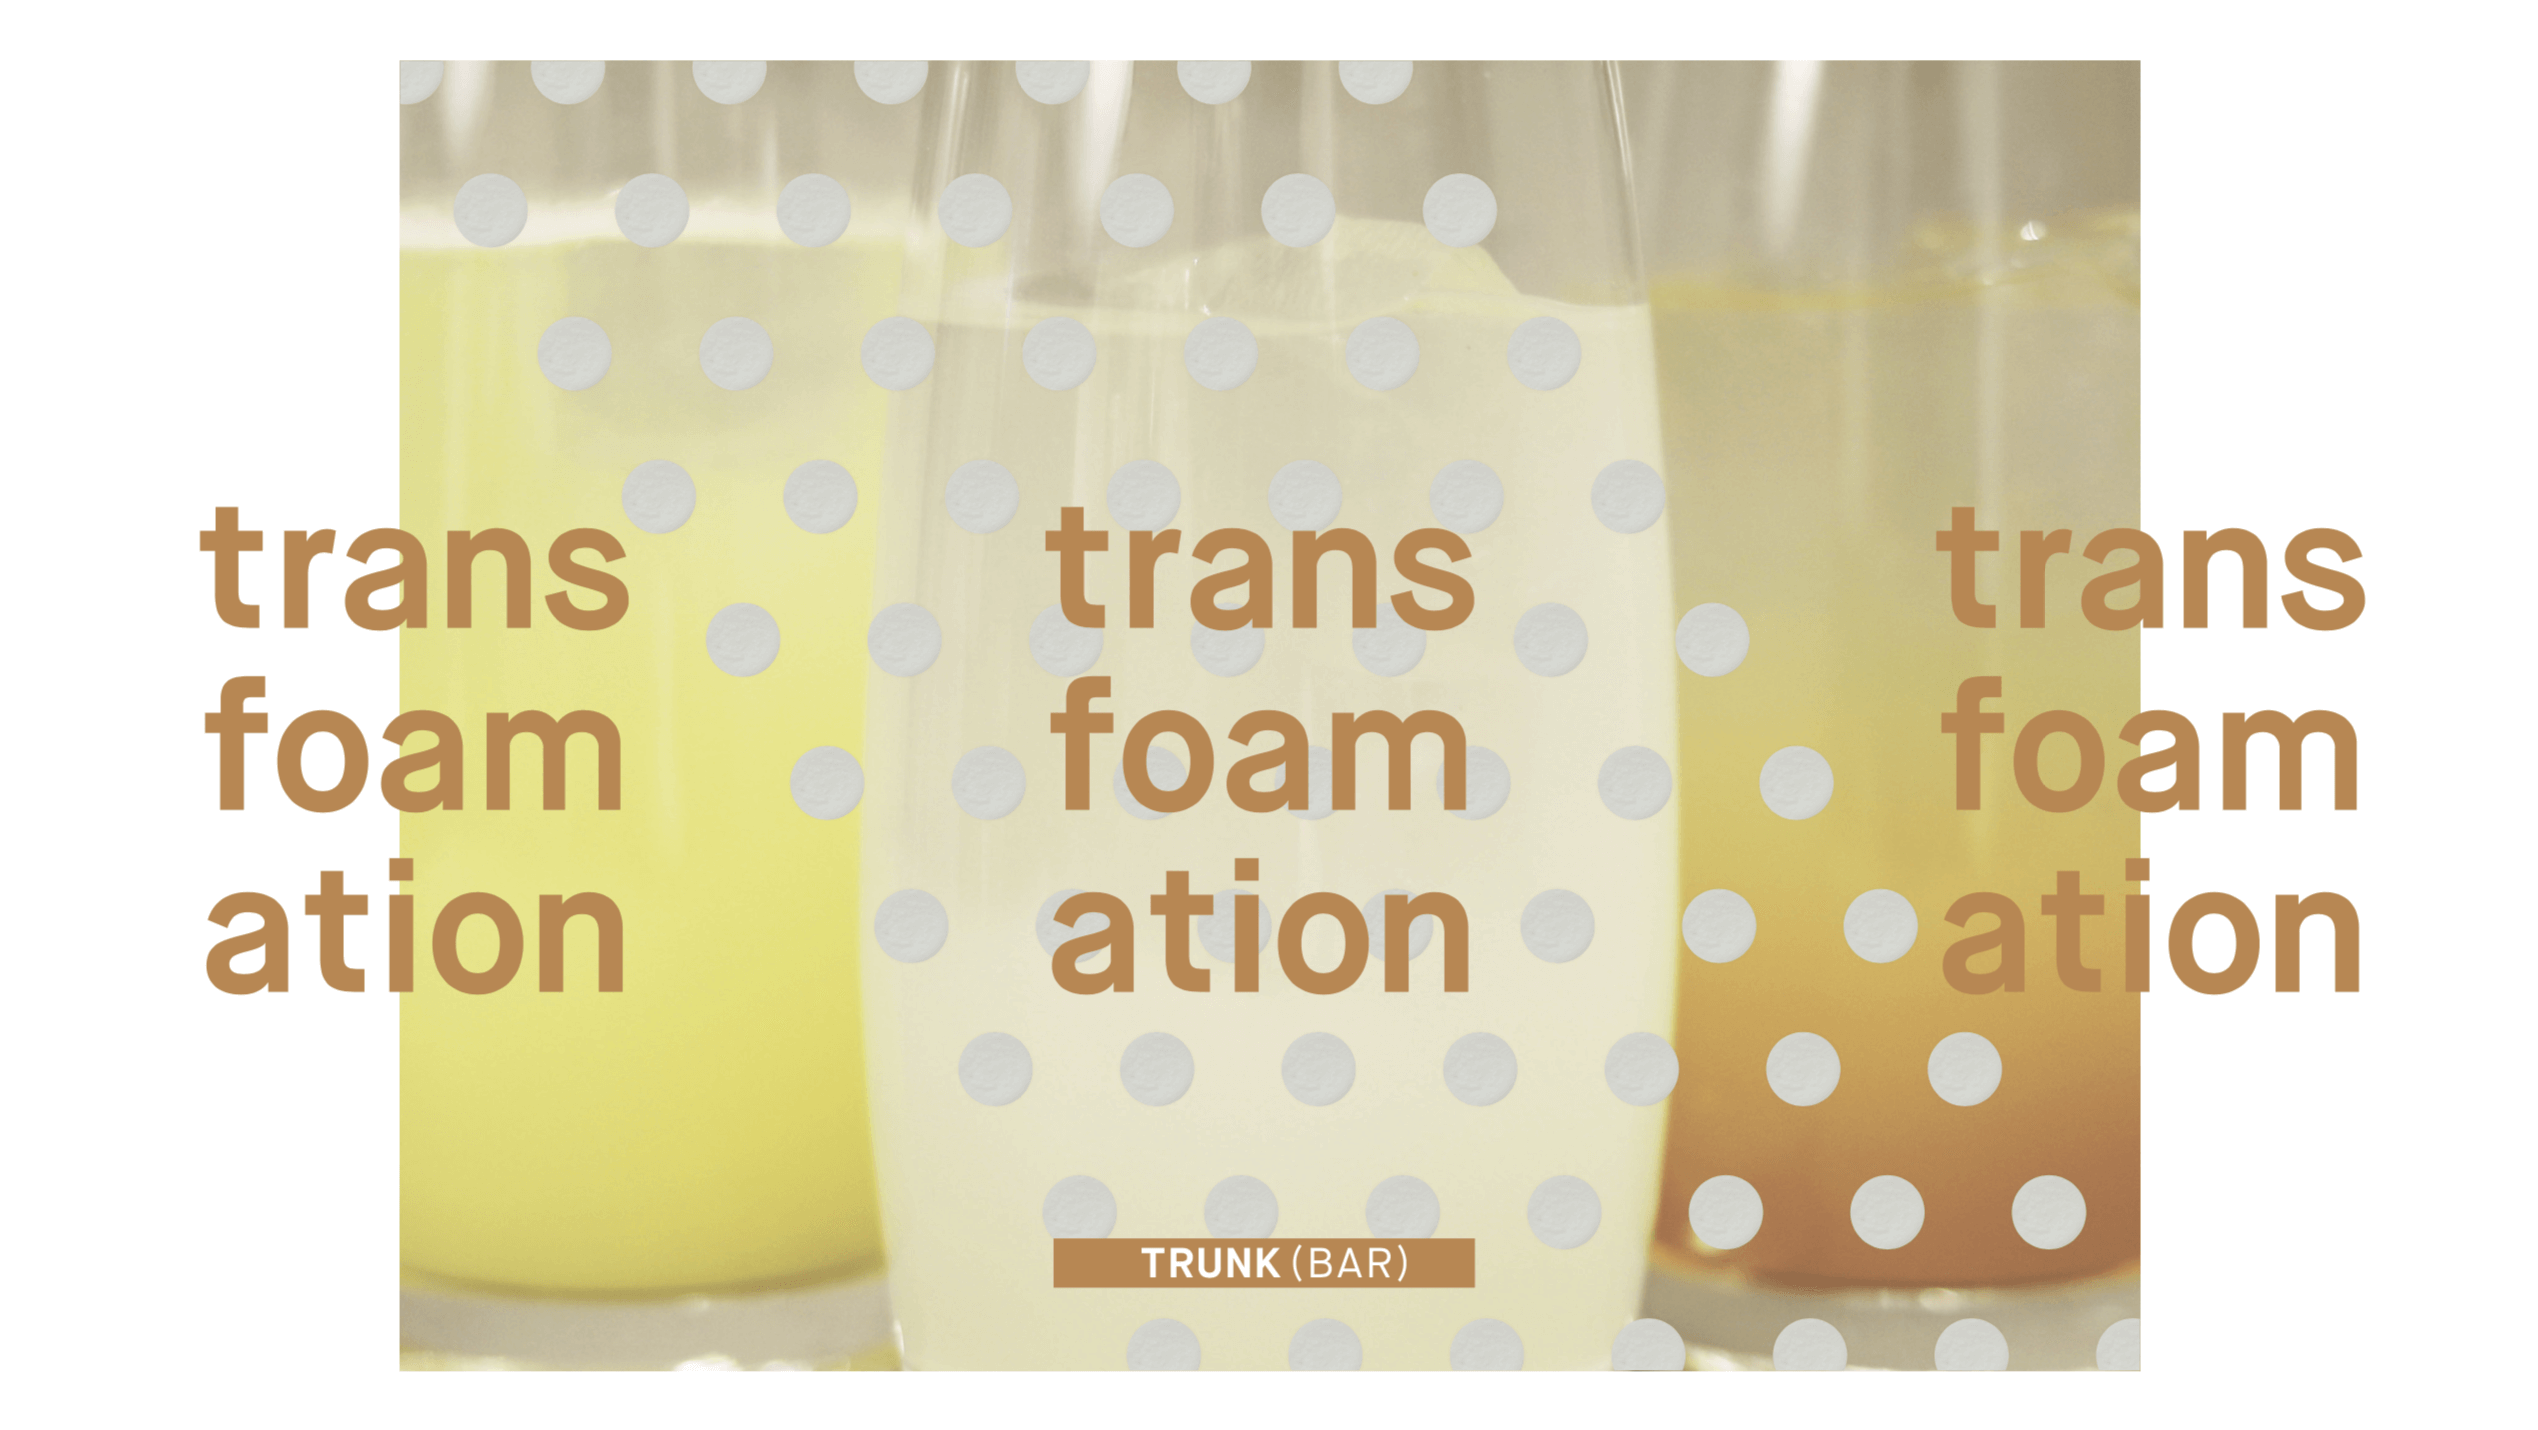 TRANS-FOAM-ATION